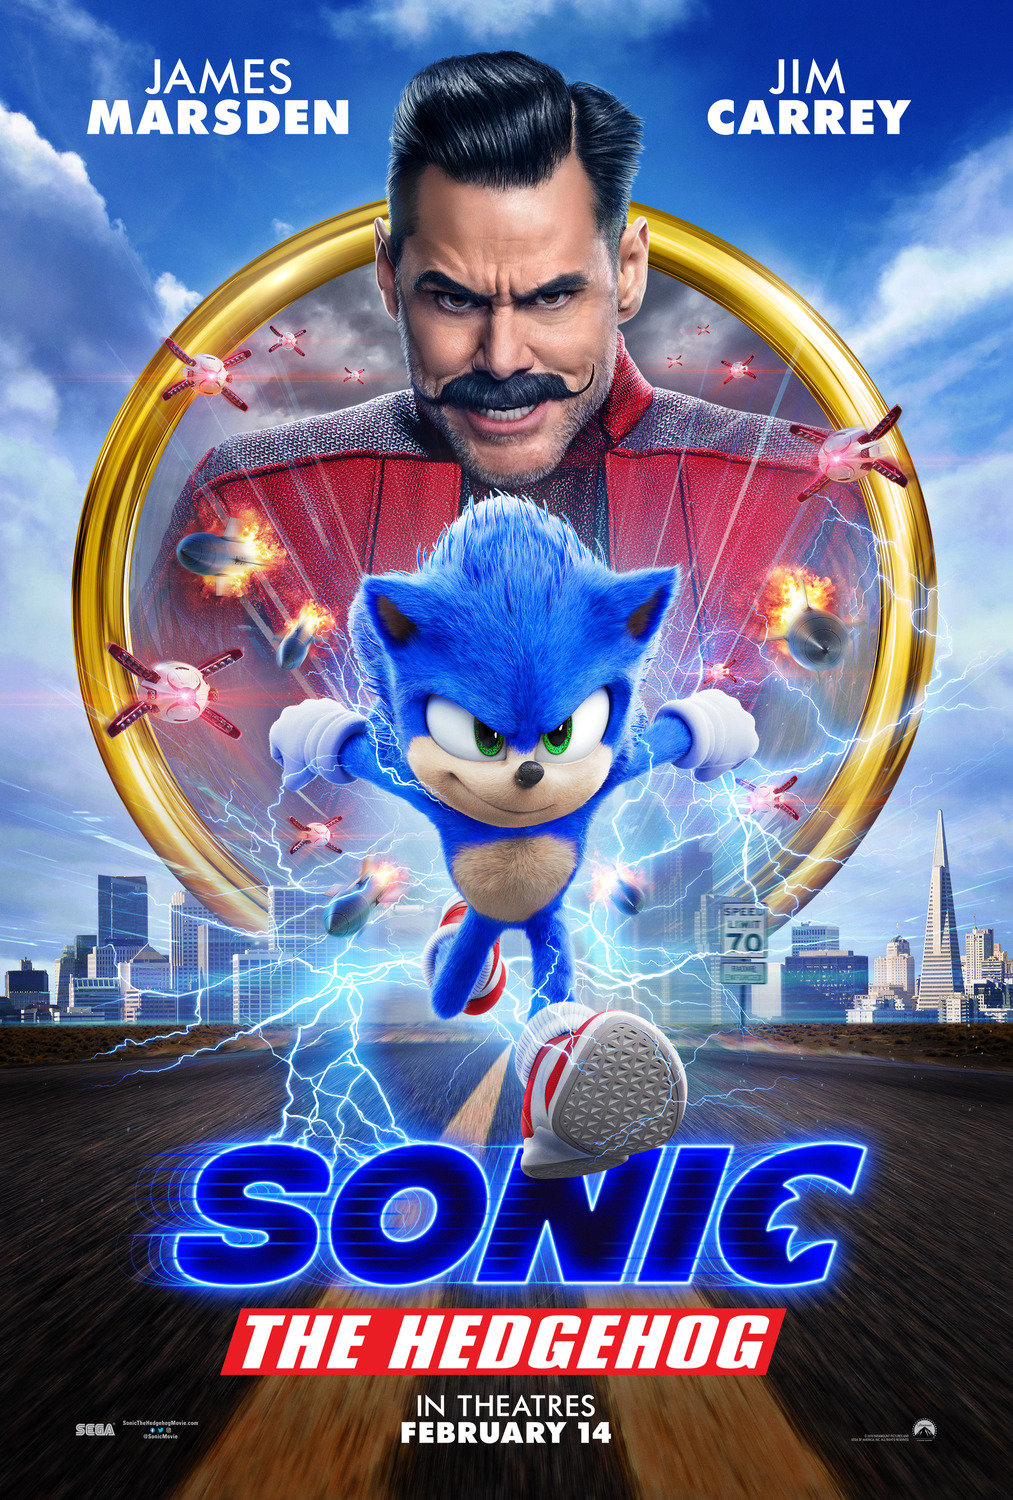 Sonic the Hedgehog [PG] Poster for Kookaburra Cinema